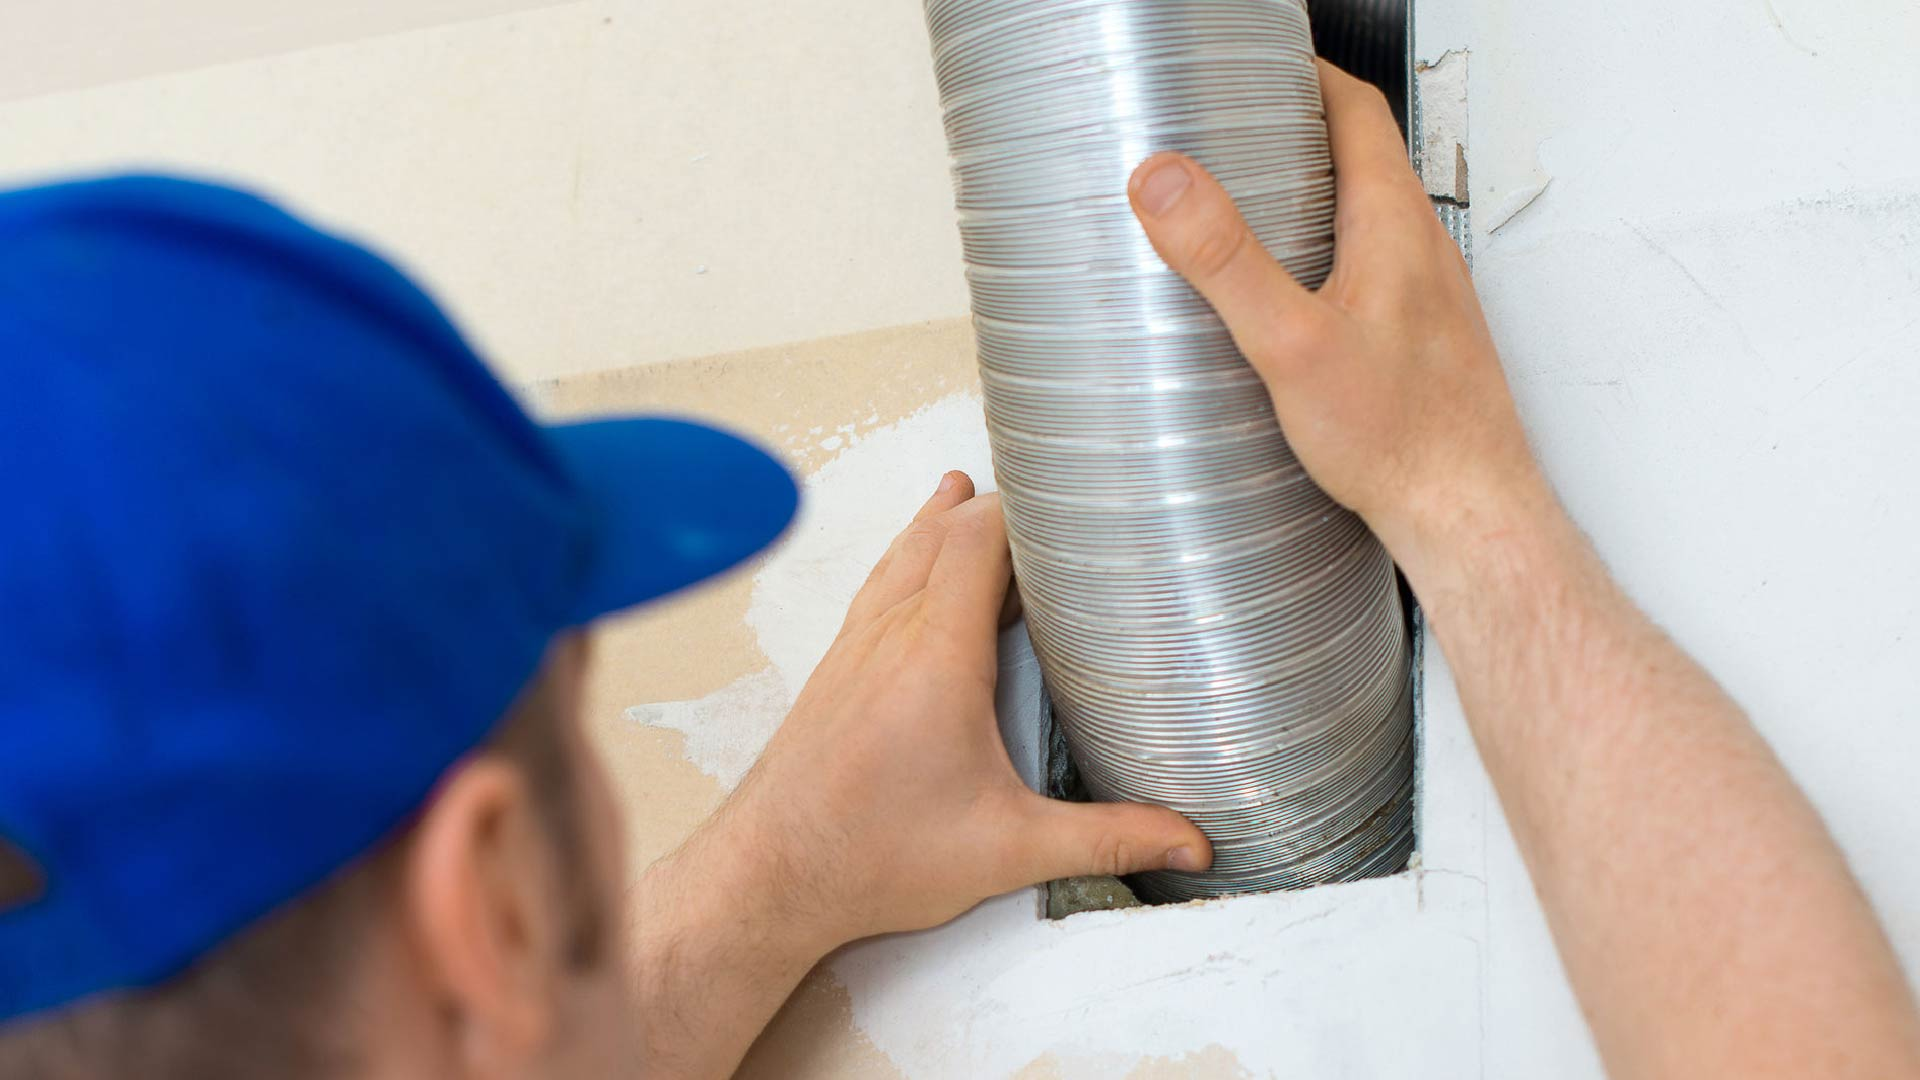 Dryer Vent Cleaning Service Near Me | S & R Air Duct Cleaning Services